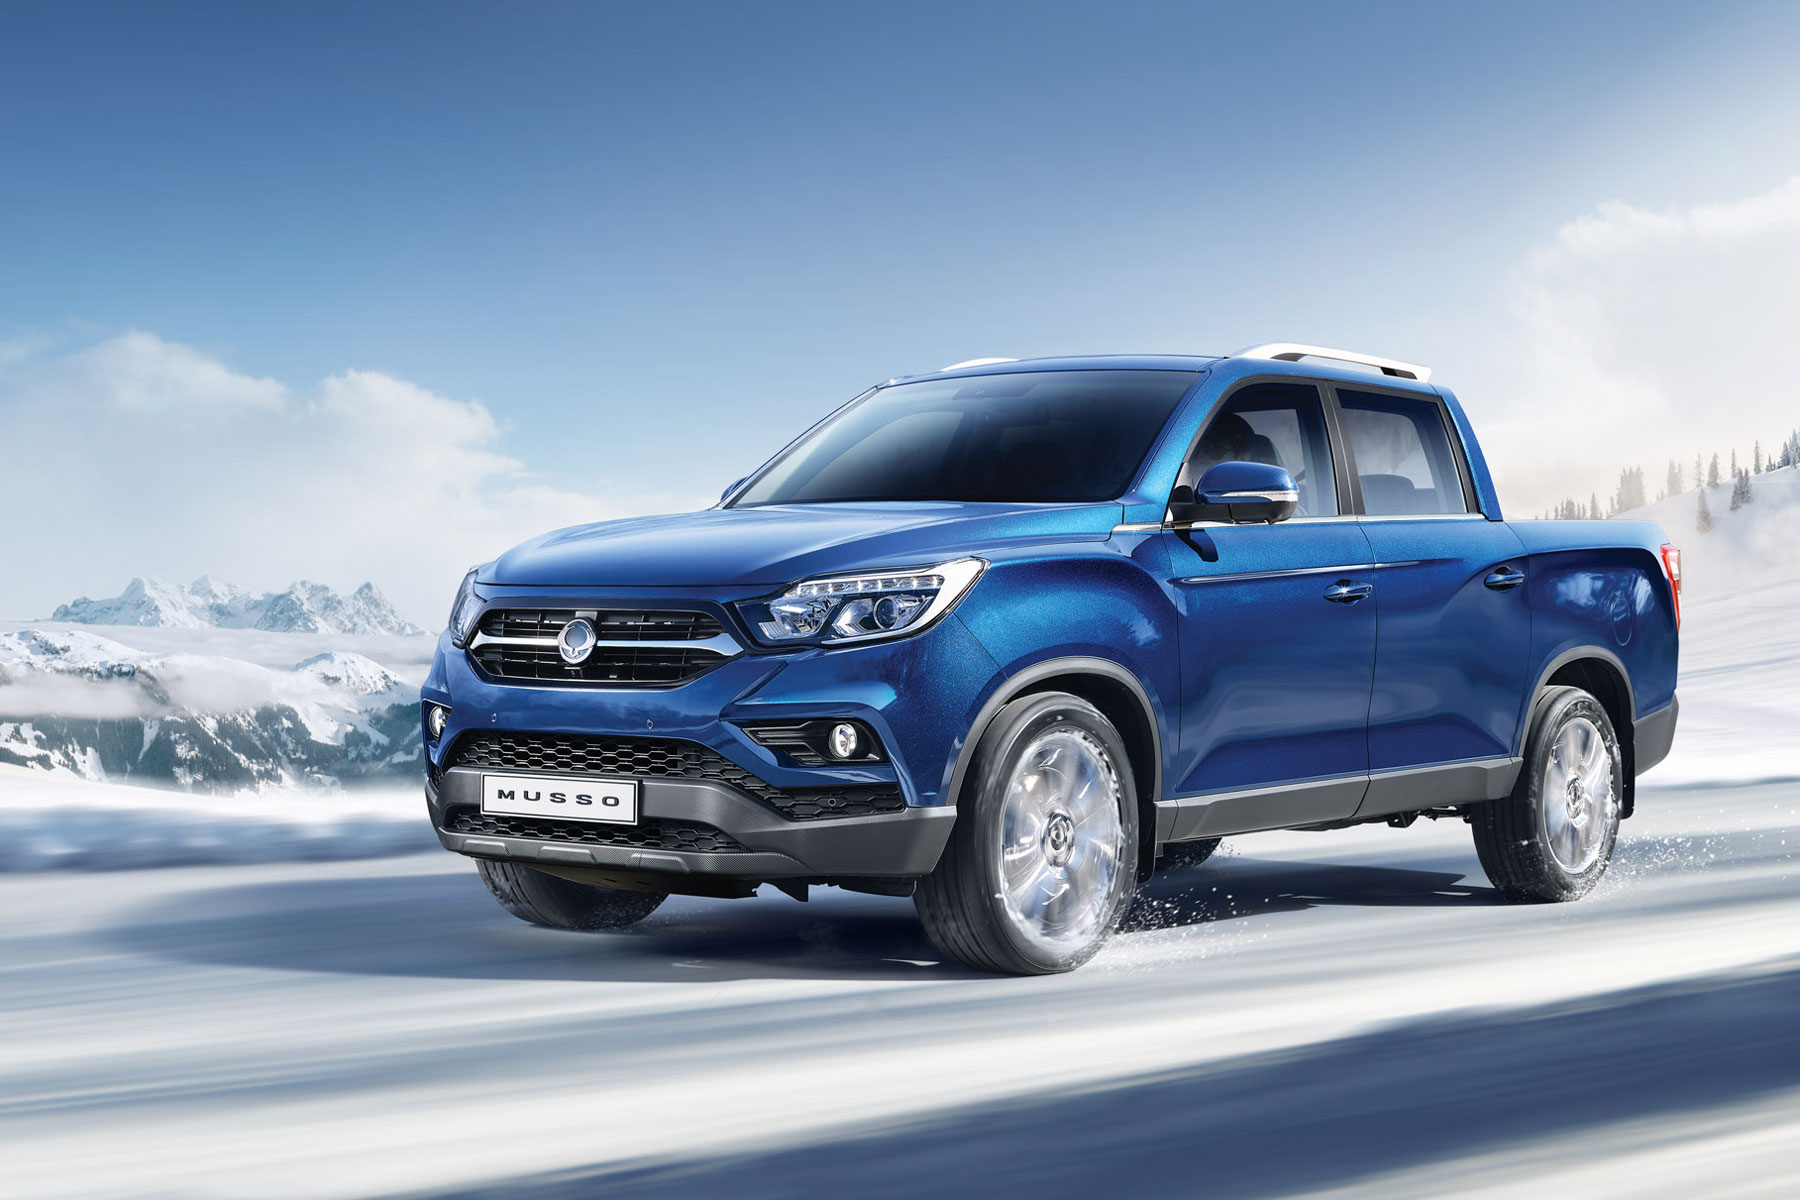 New Ssangyong Musso Pickup For 2018 Full Details And